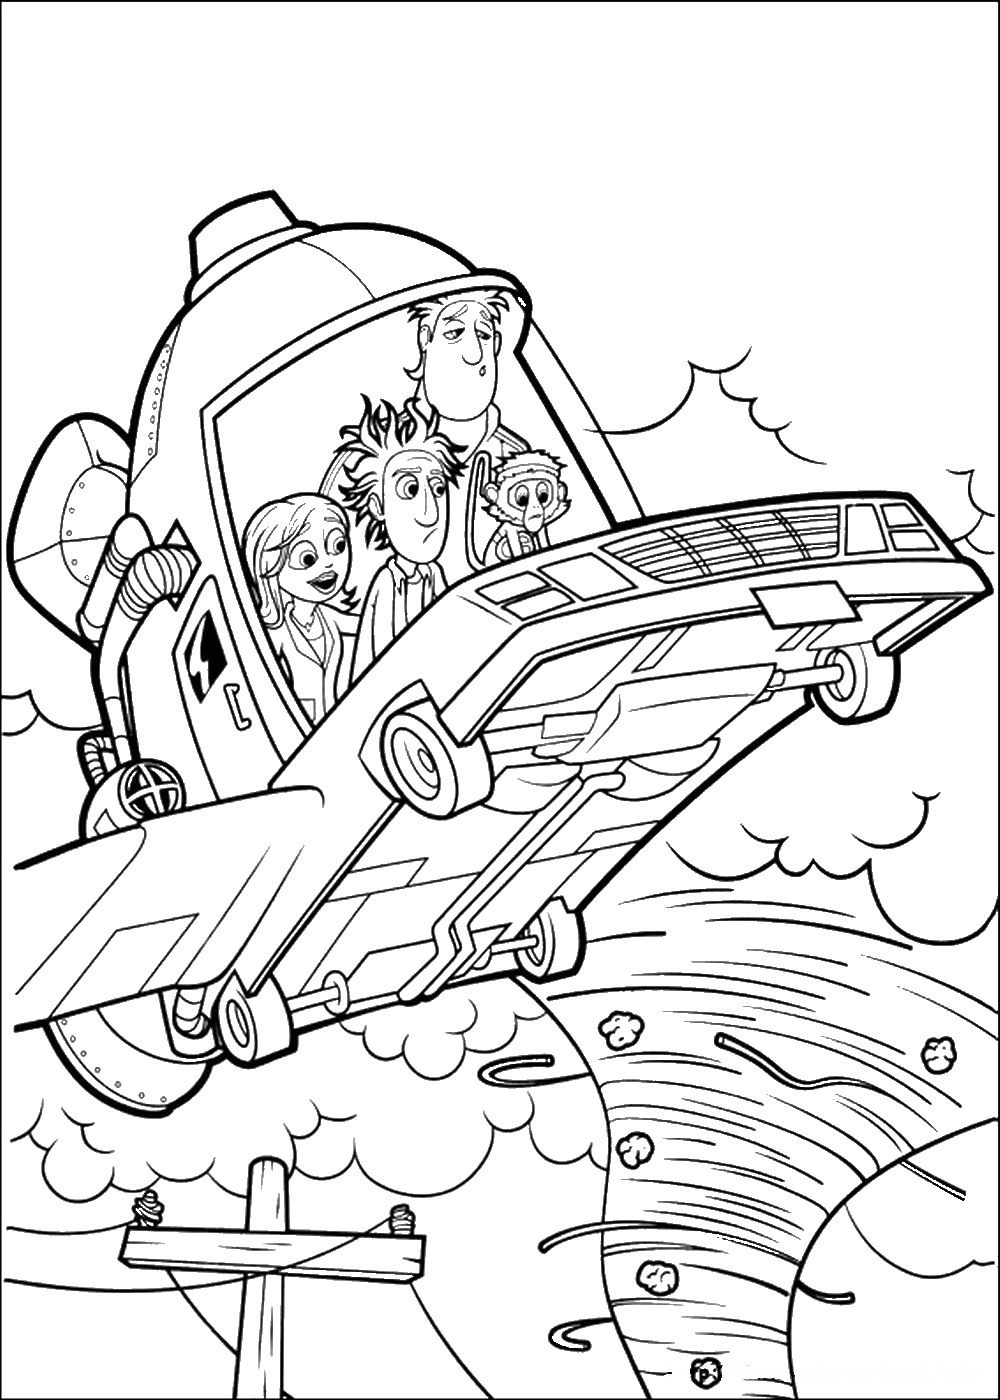 cloudy with a chance of meatballs 2 coloring pages cloudy with a chance of meatballs coloring pages coloring chance 2 meatballs cloudy a of with pages